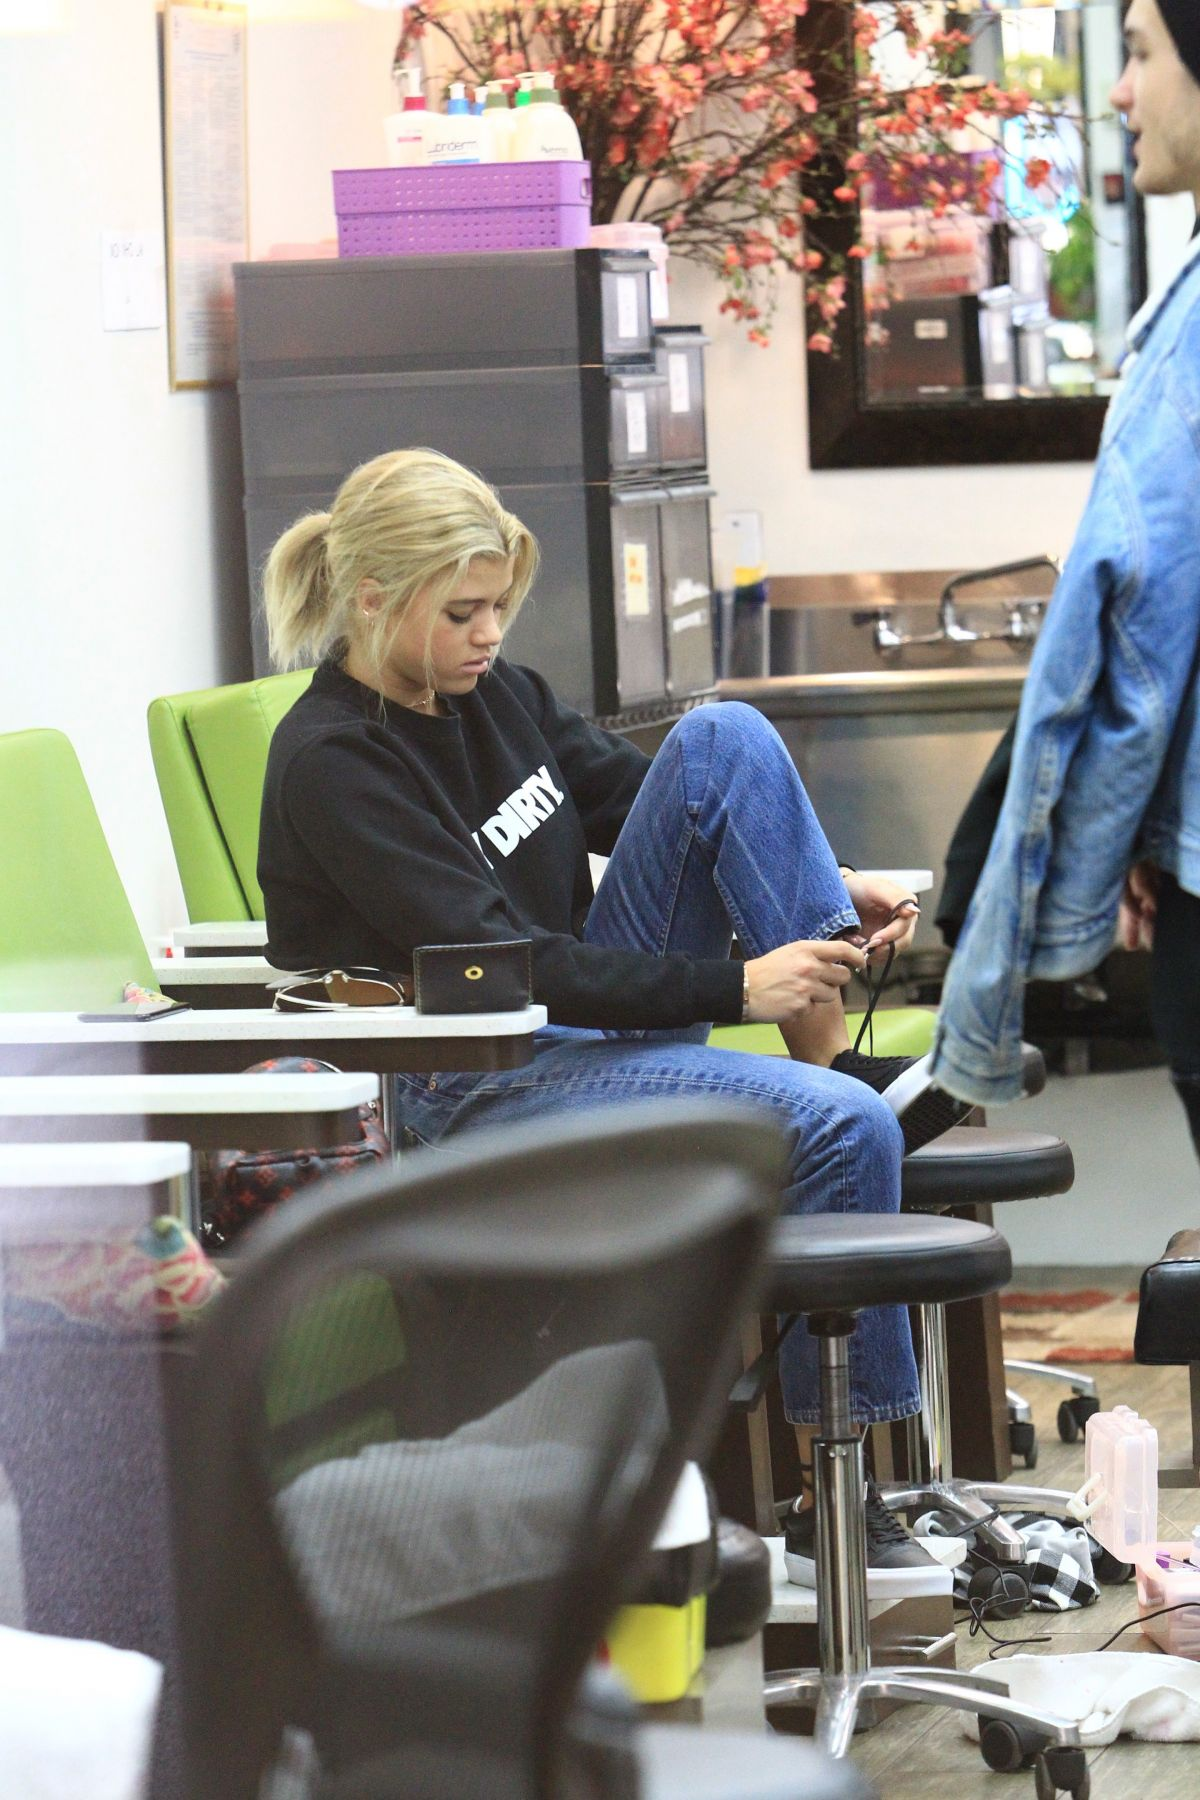 SOFIA RICHIE at a Nail Salon in Beverly Hills 01/09/2017